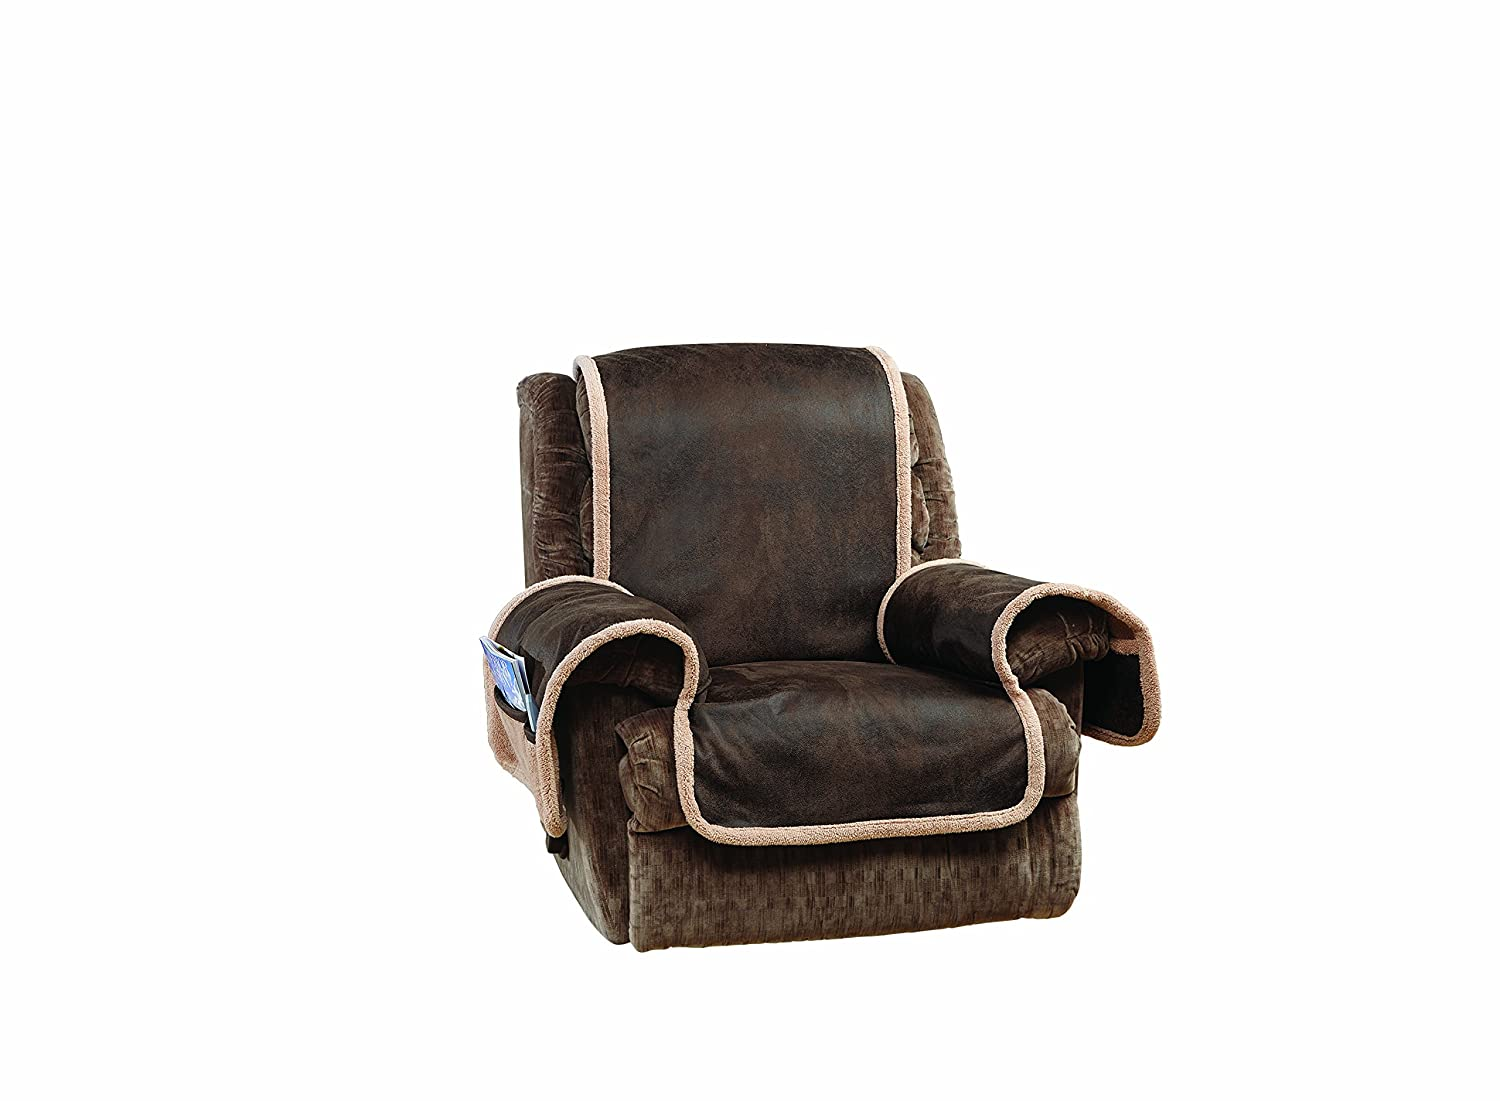 Sure Fit Vintage Faux Leather - Recliner Slipcover - Brown (SF44903) Sure Fit Inc.